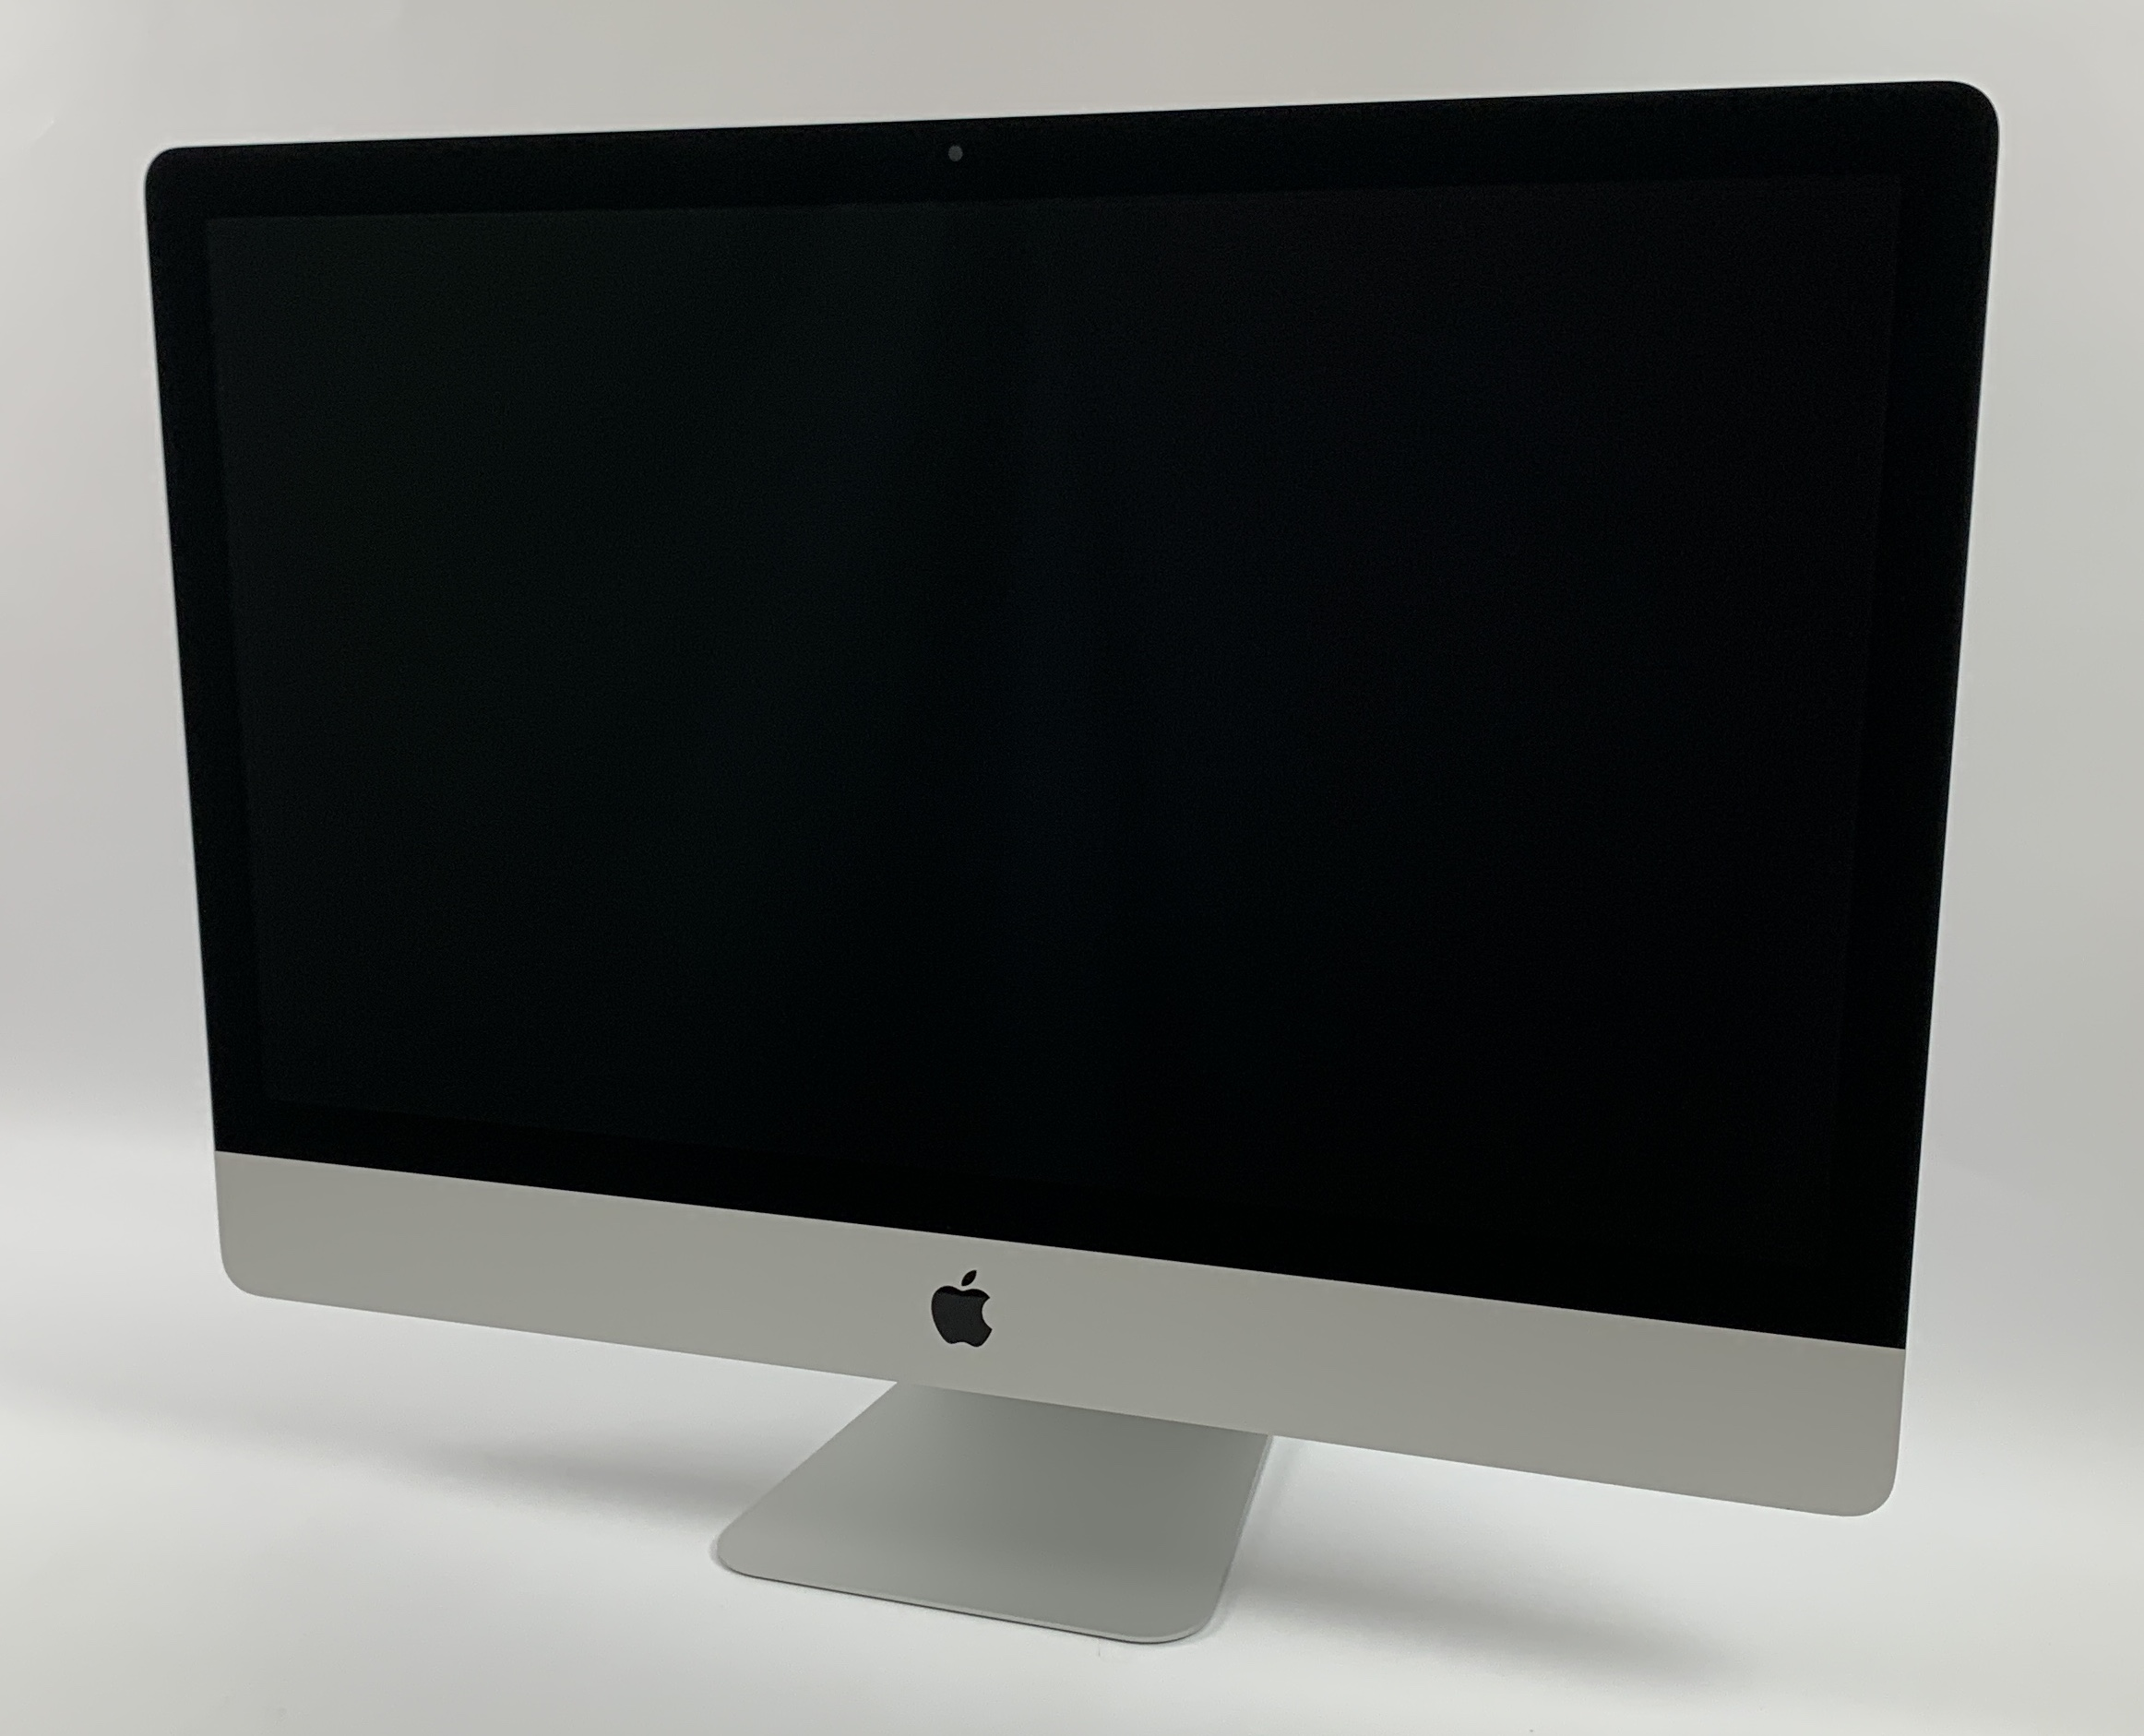 "iMac 27"" Retina 5K Mid 2020 (Intel 8-Core i7 3.8 GHz 128 GB RAM 512 GB SSD), Intel 8-Core i7 3.8 GHz, 128 GB RAM, 512 GB SSD, Kuva 1"